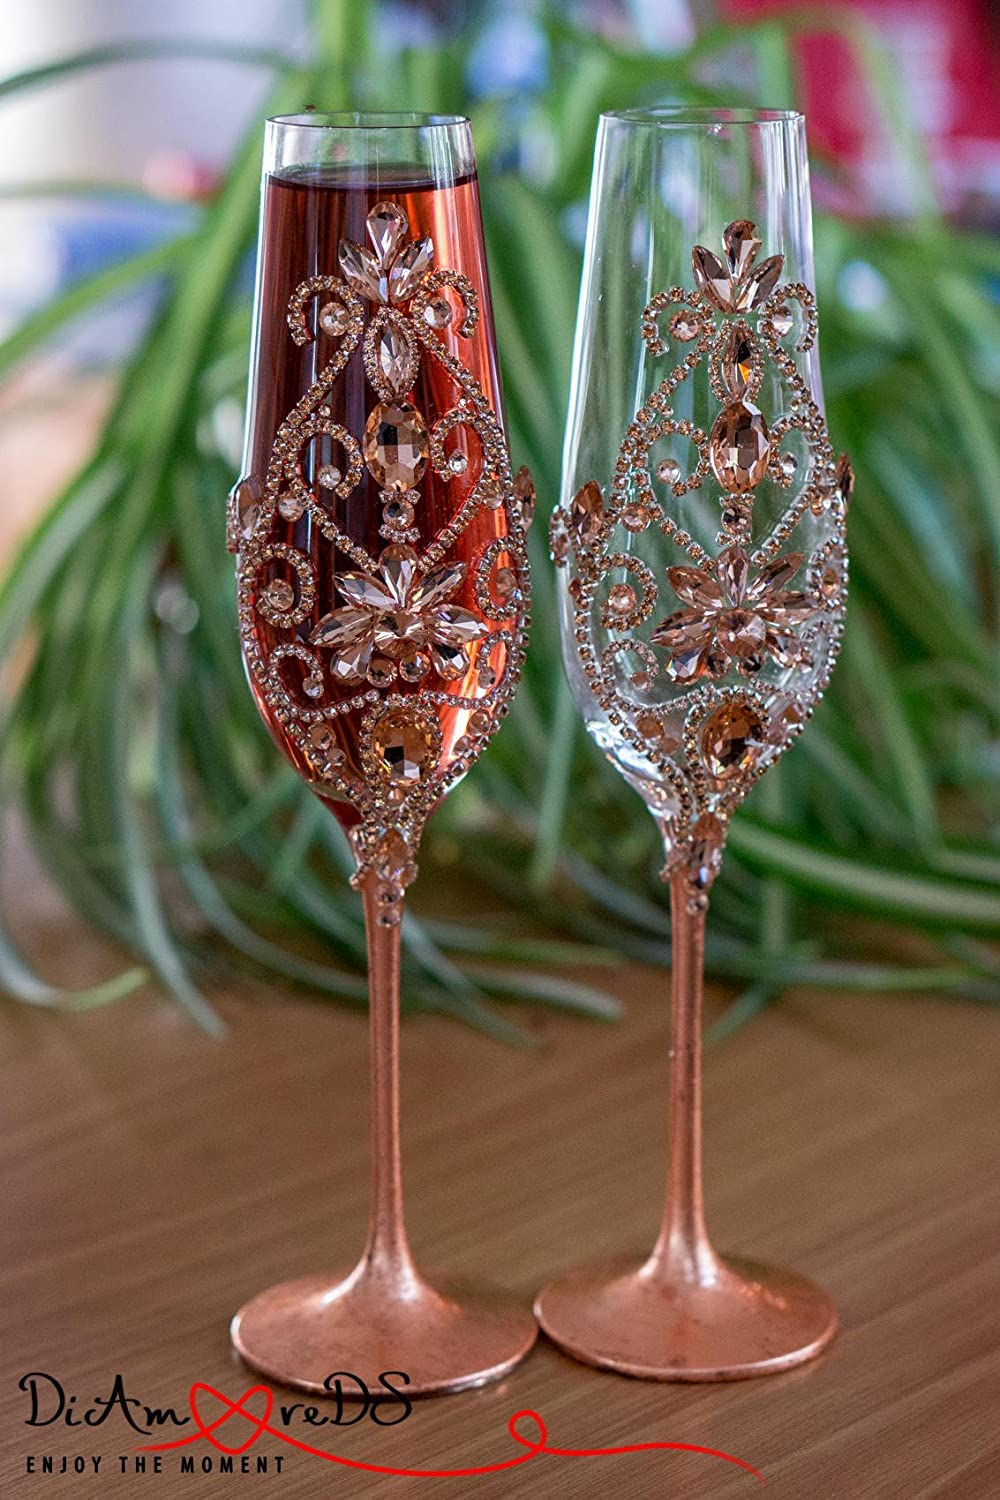 Rose Gold Wedding Glasses, Champagne Flutes, Wedding Dé cor, Personalized Wedding Flutes, Toasting Flutes Wedding Set, th Wedding Anniversary